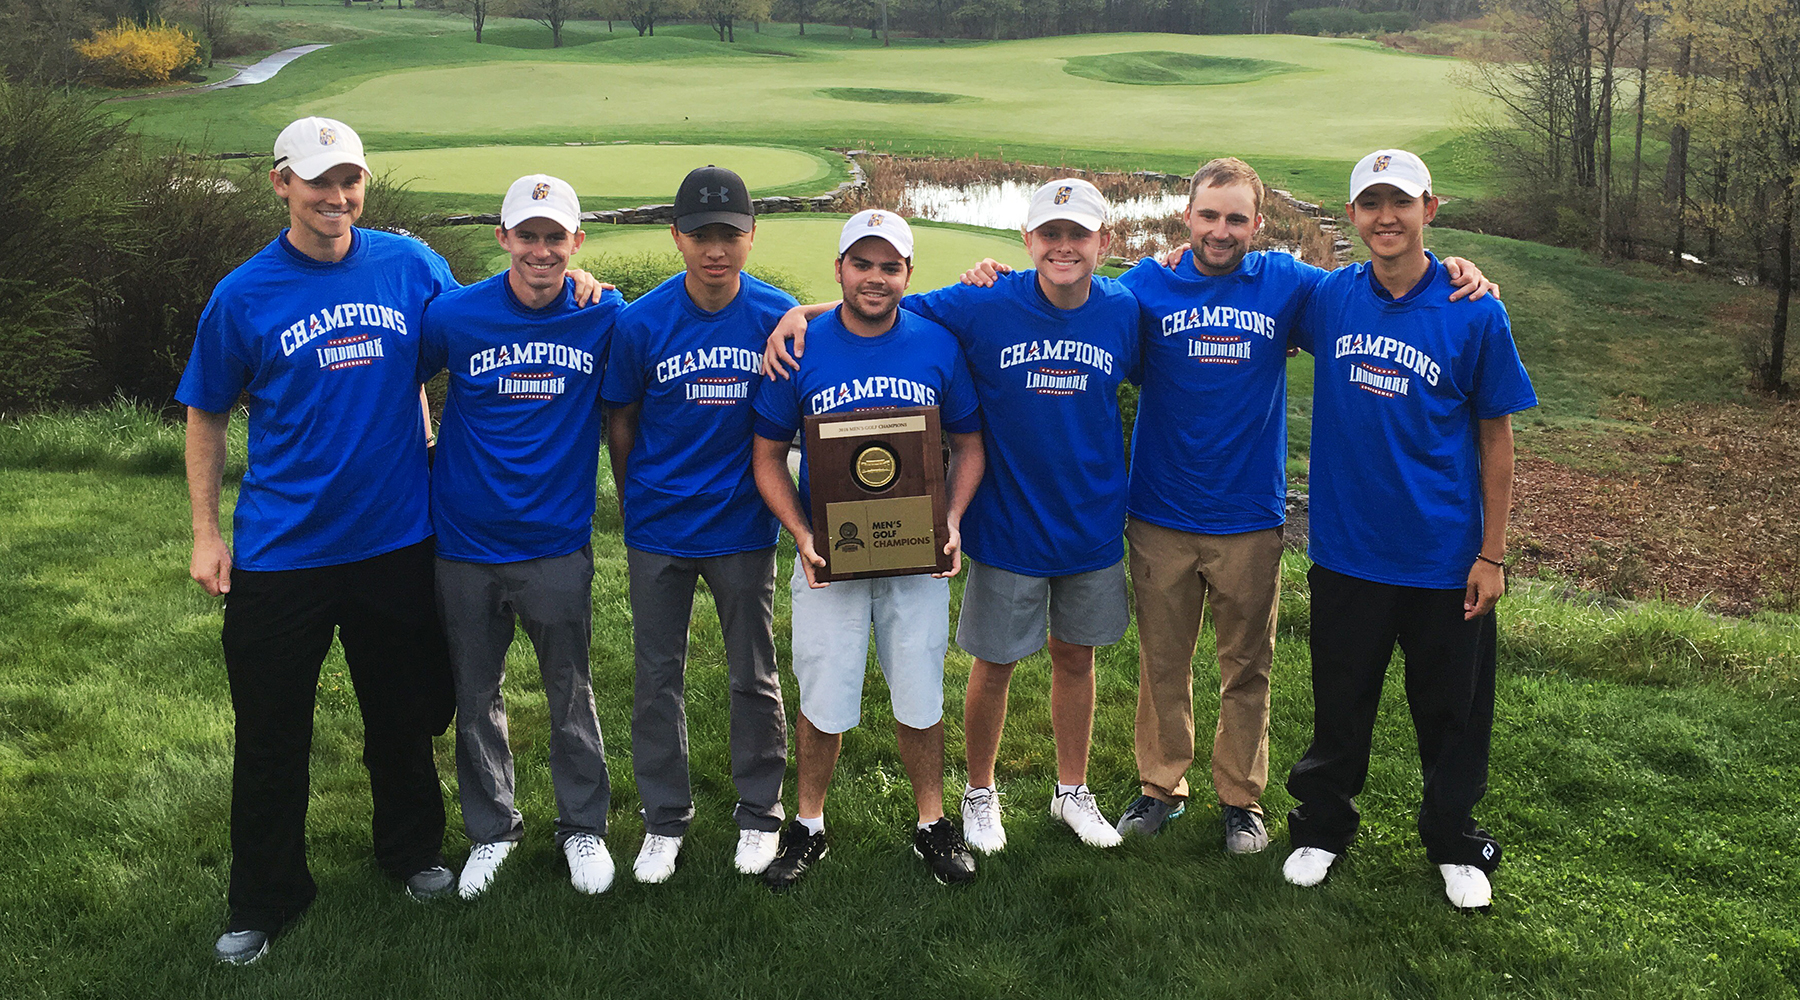 Men's Golf Captures Inaugural Landmark Conference Championship to Cap Program's First Season